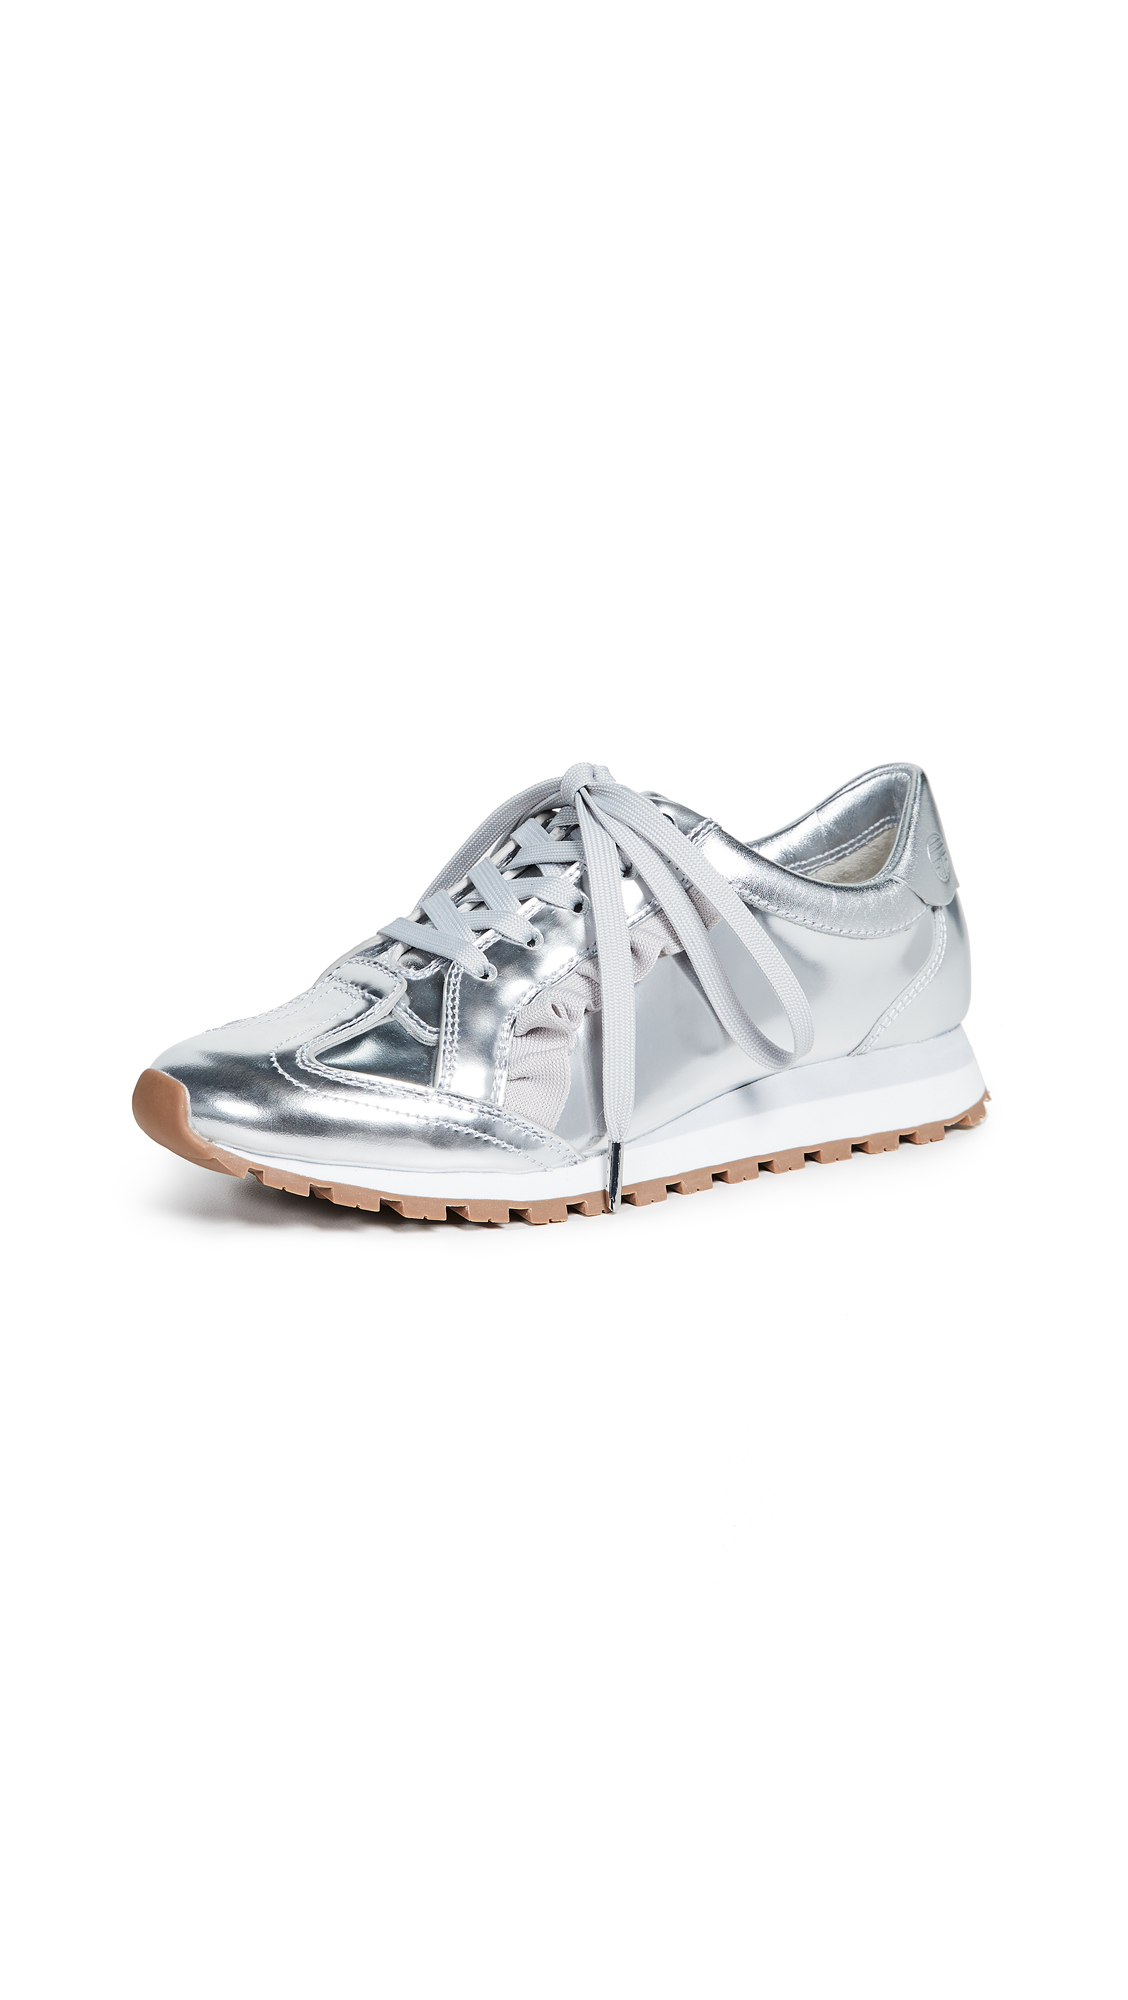 Tory Sport Ruffle Trainer Sneakers - Silver